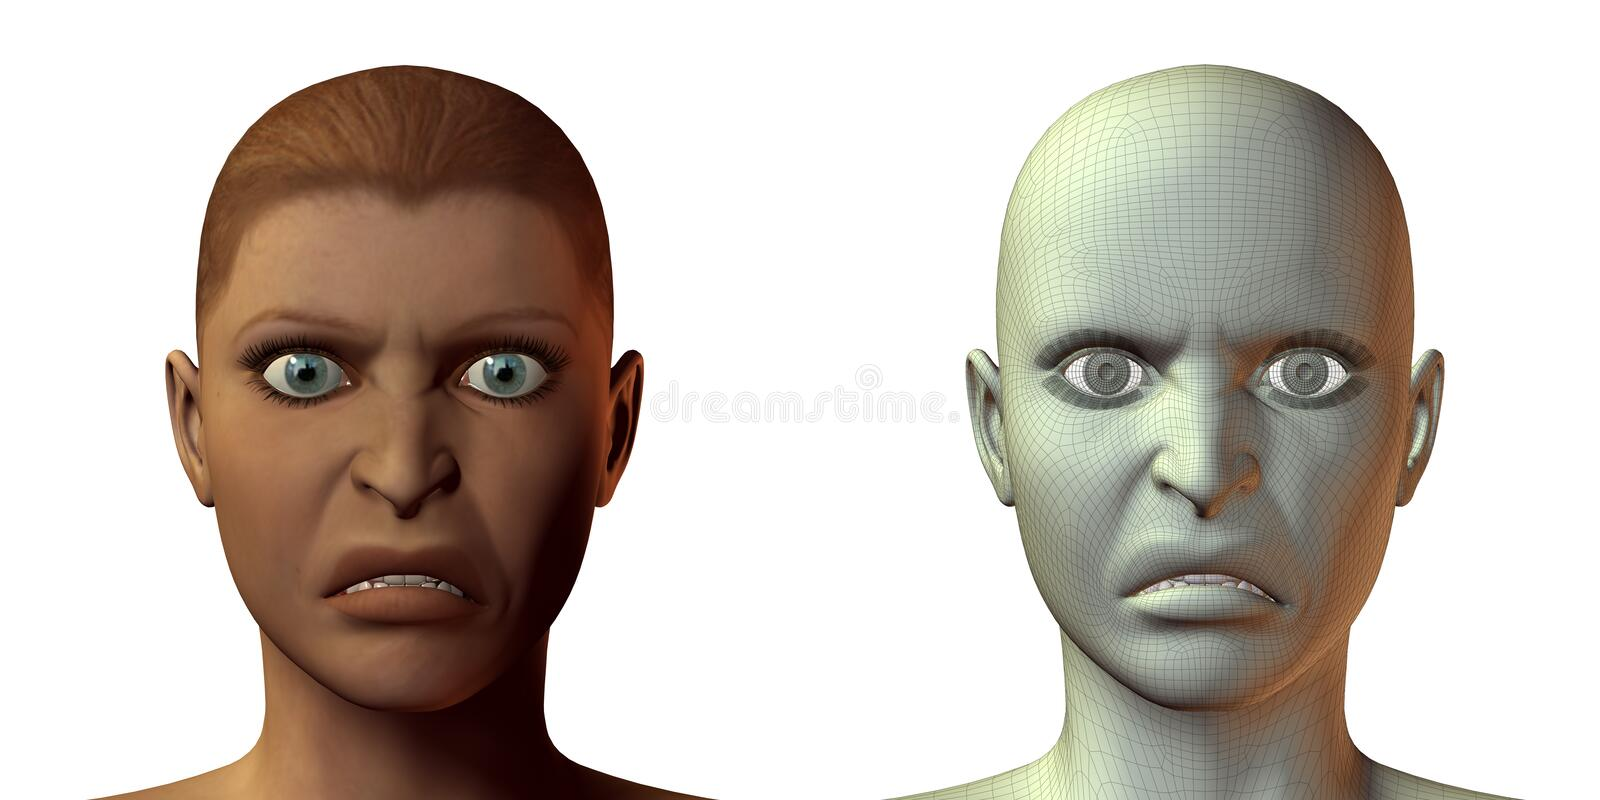 fille de visage de l'émotion 3d illustration de vecteur